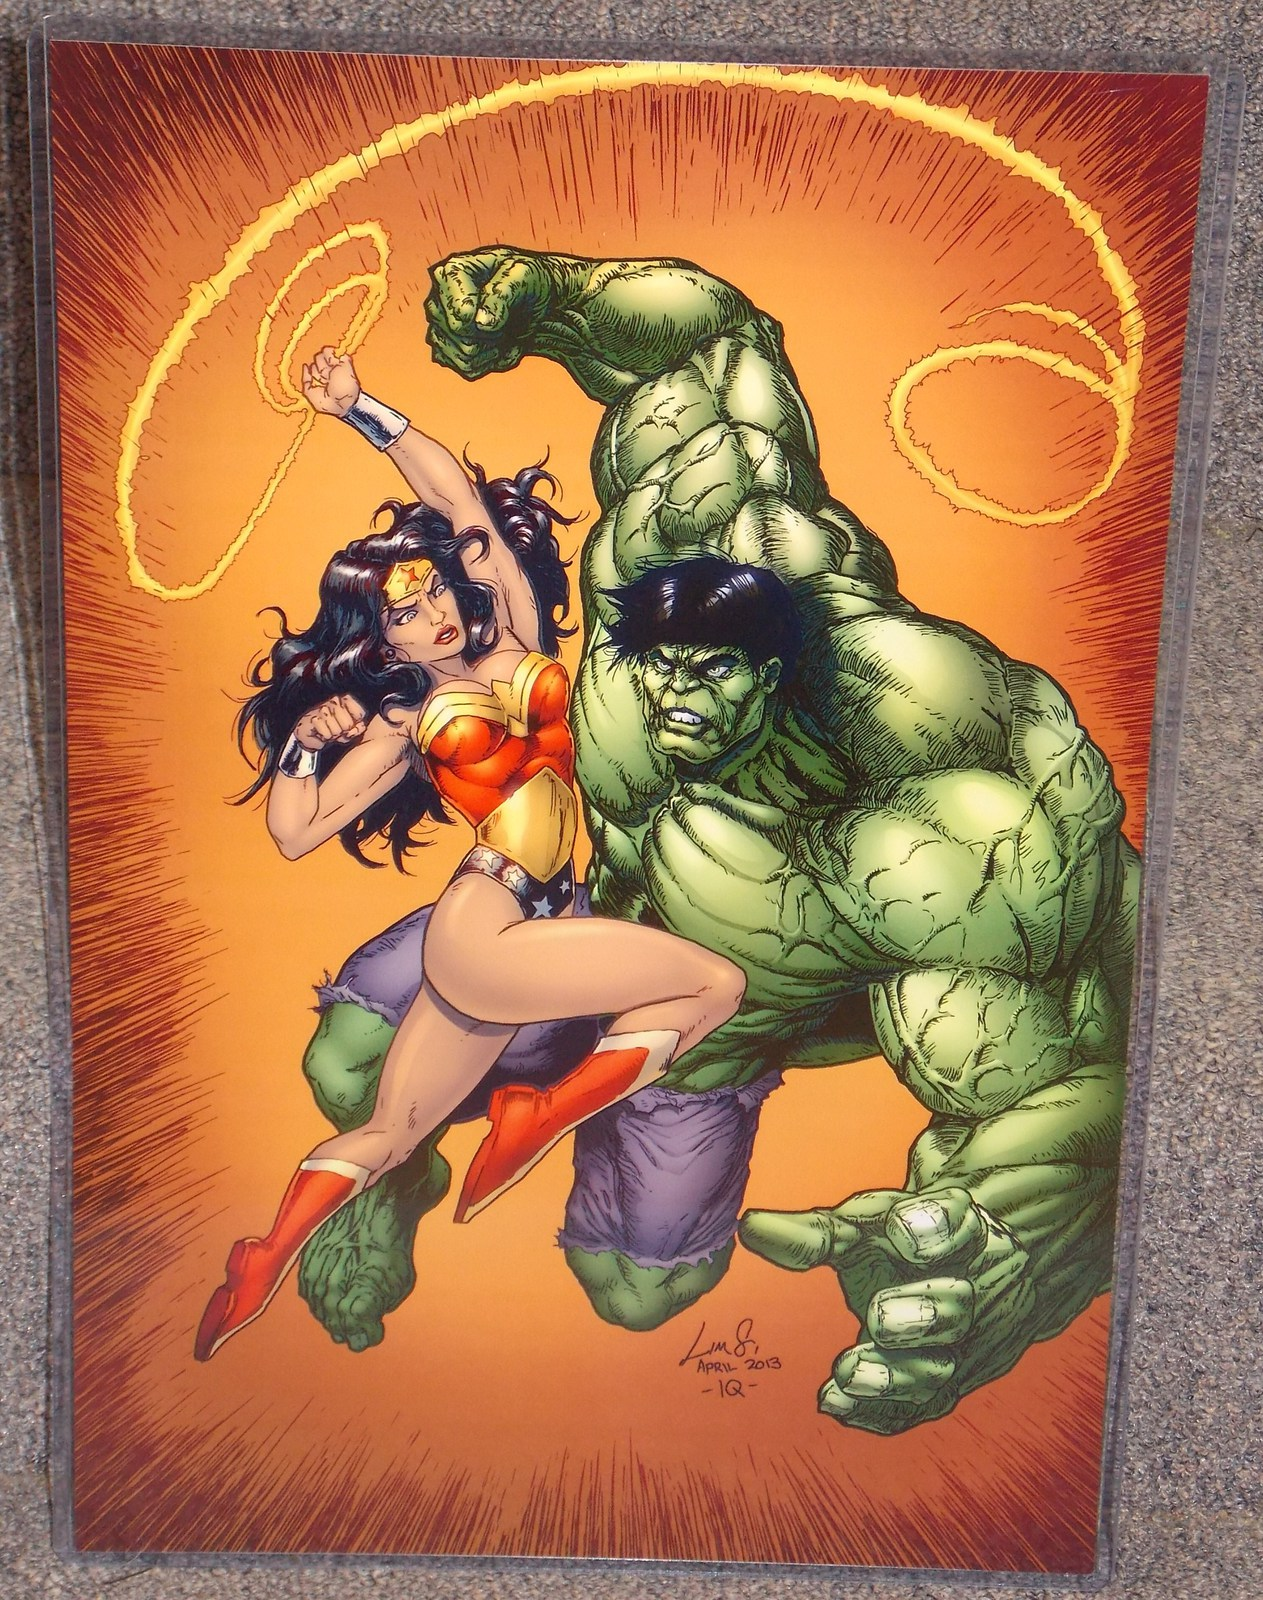 Primary image for DC Wonder Woman vs Marvel Incredible Hulk Glossy Print In Hard Plastic Sleeve